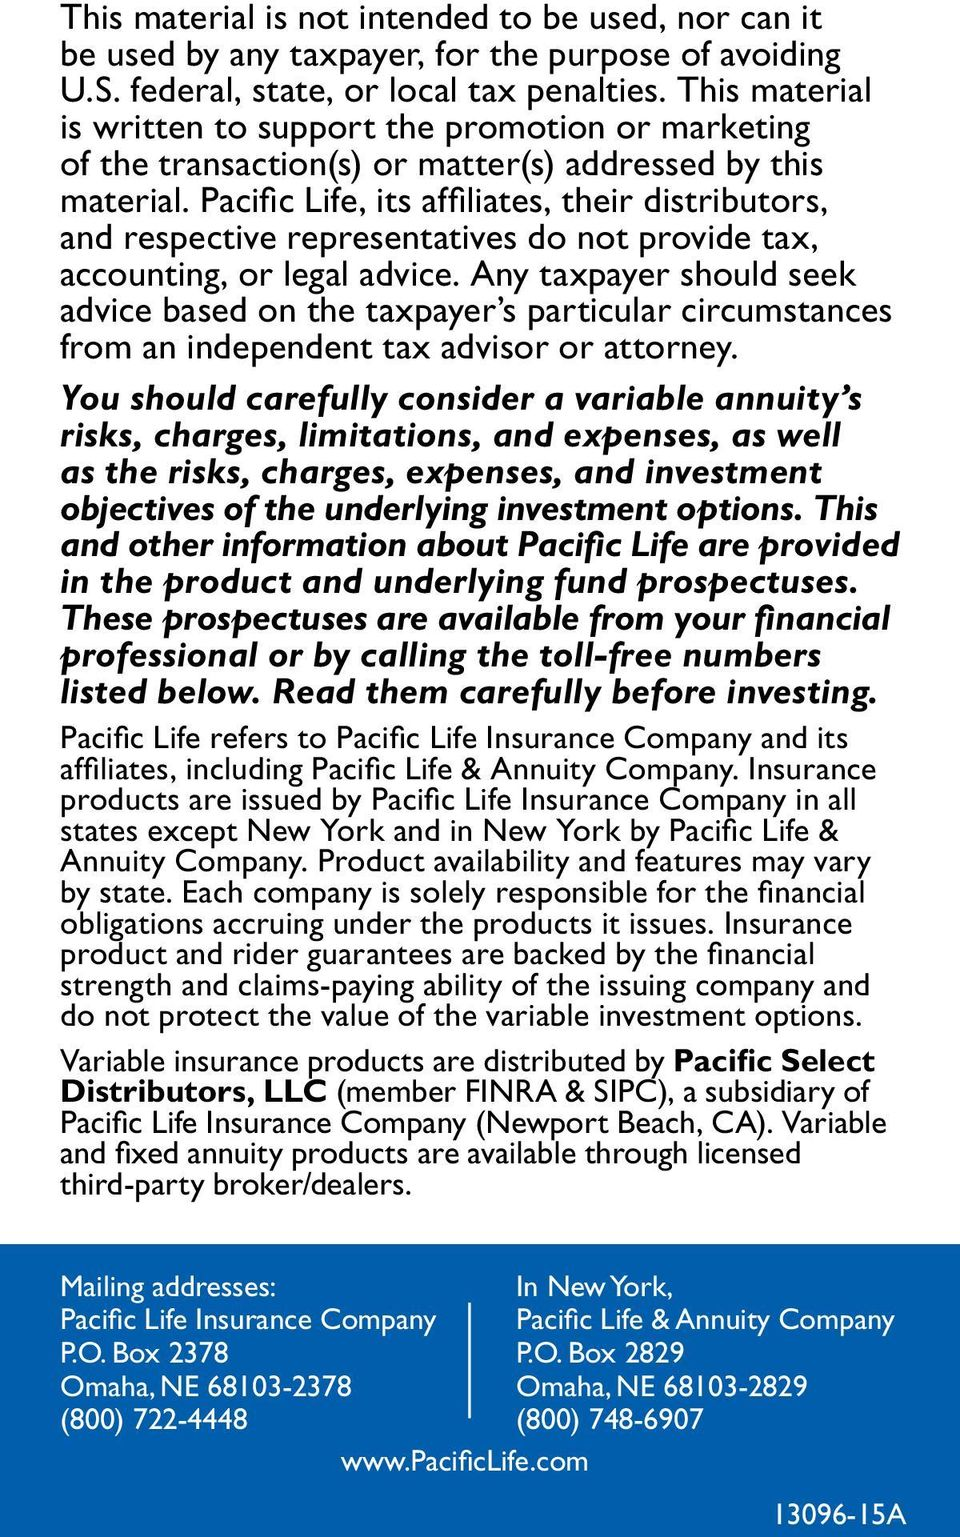 Pacific Life, its affiliates, their distributors, and respective representatives do not provide tax, accounting, or legal advice.